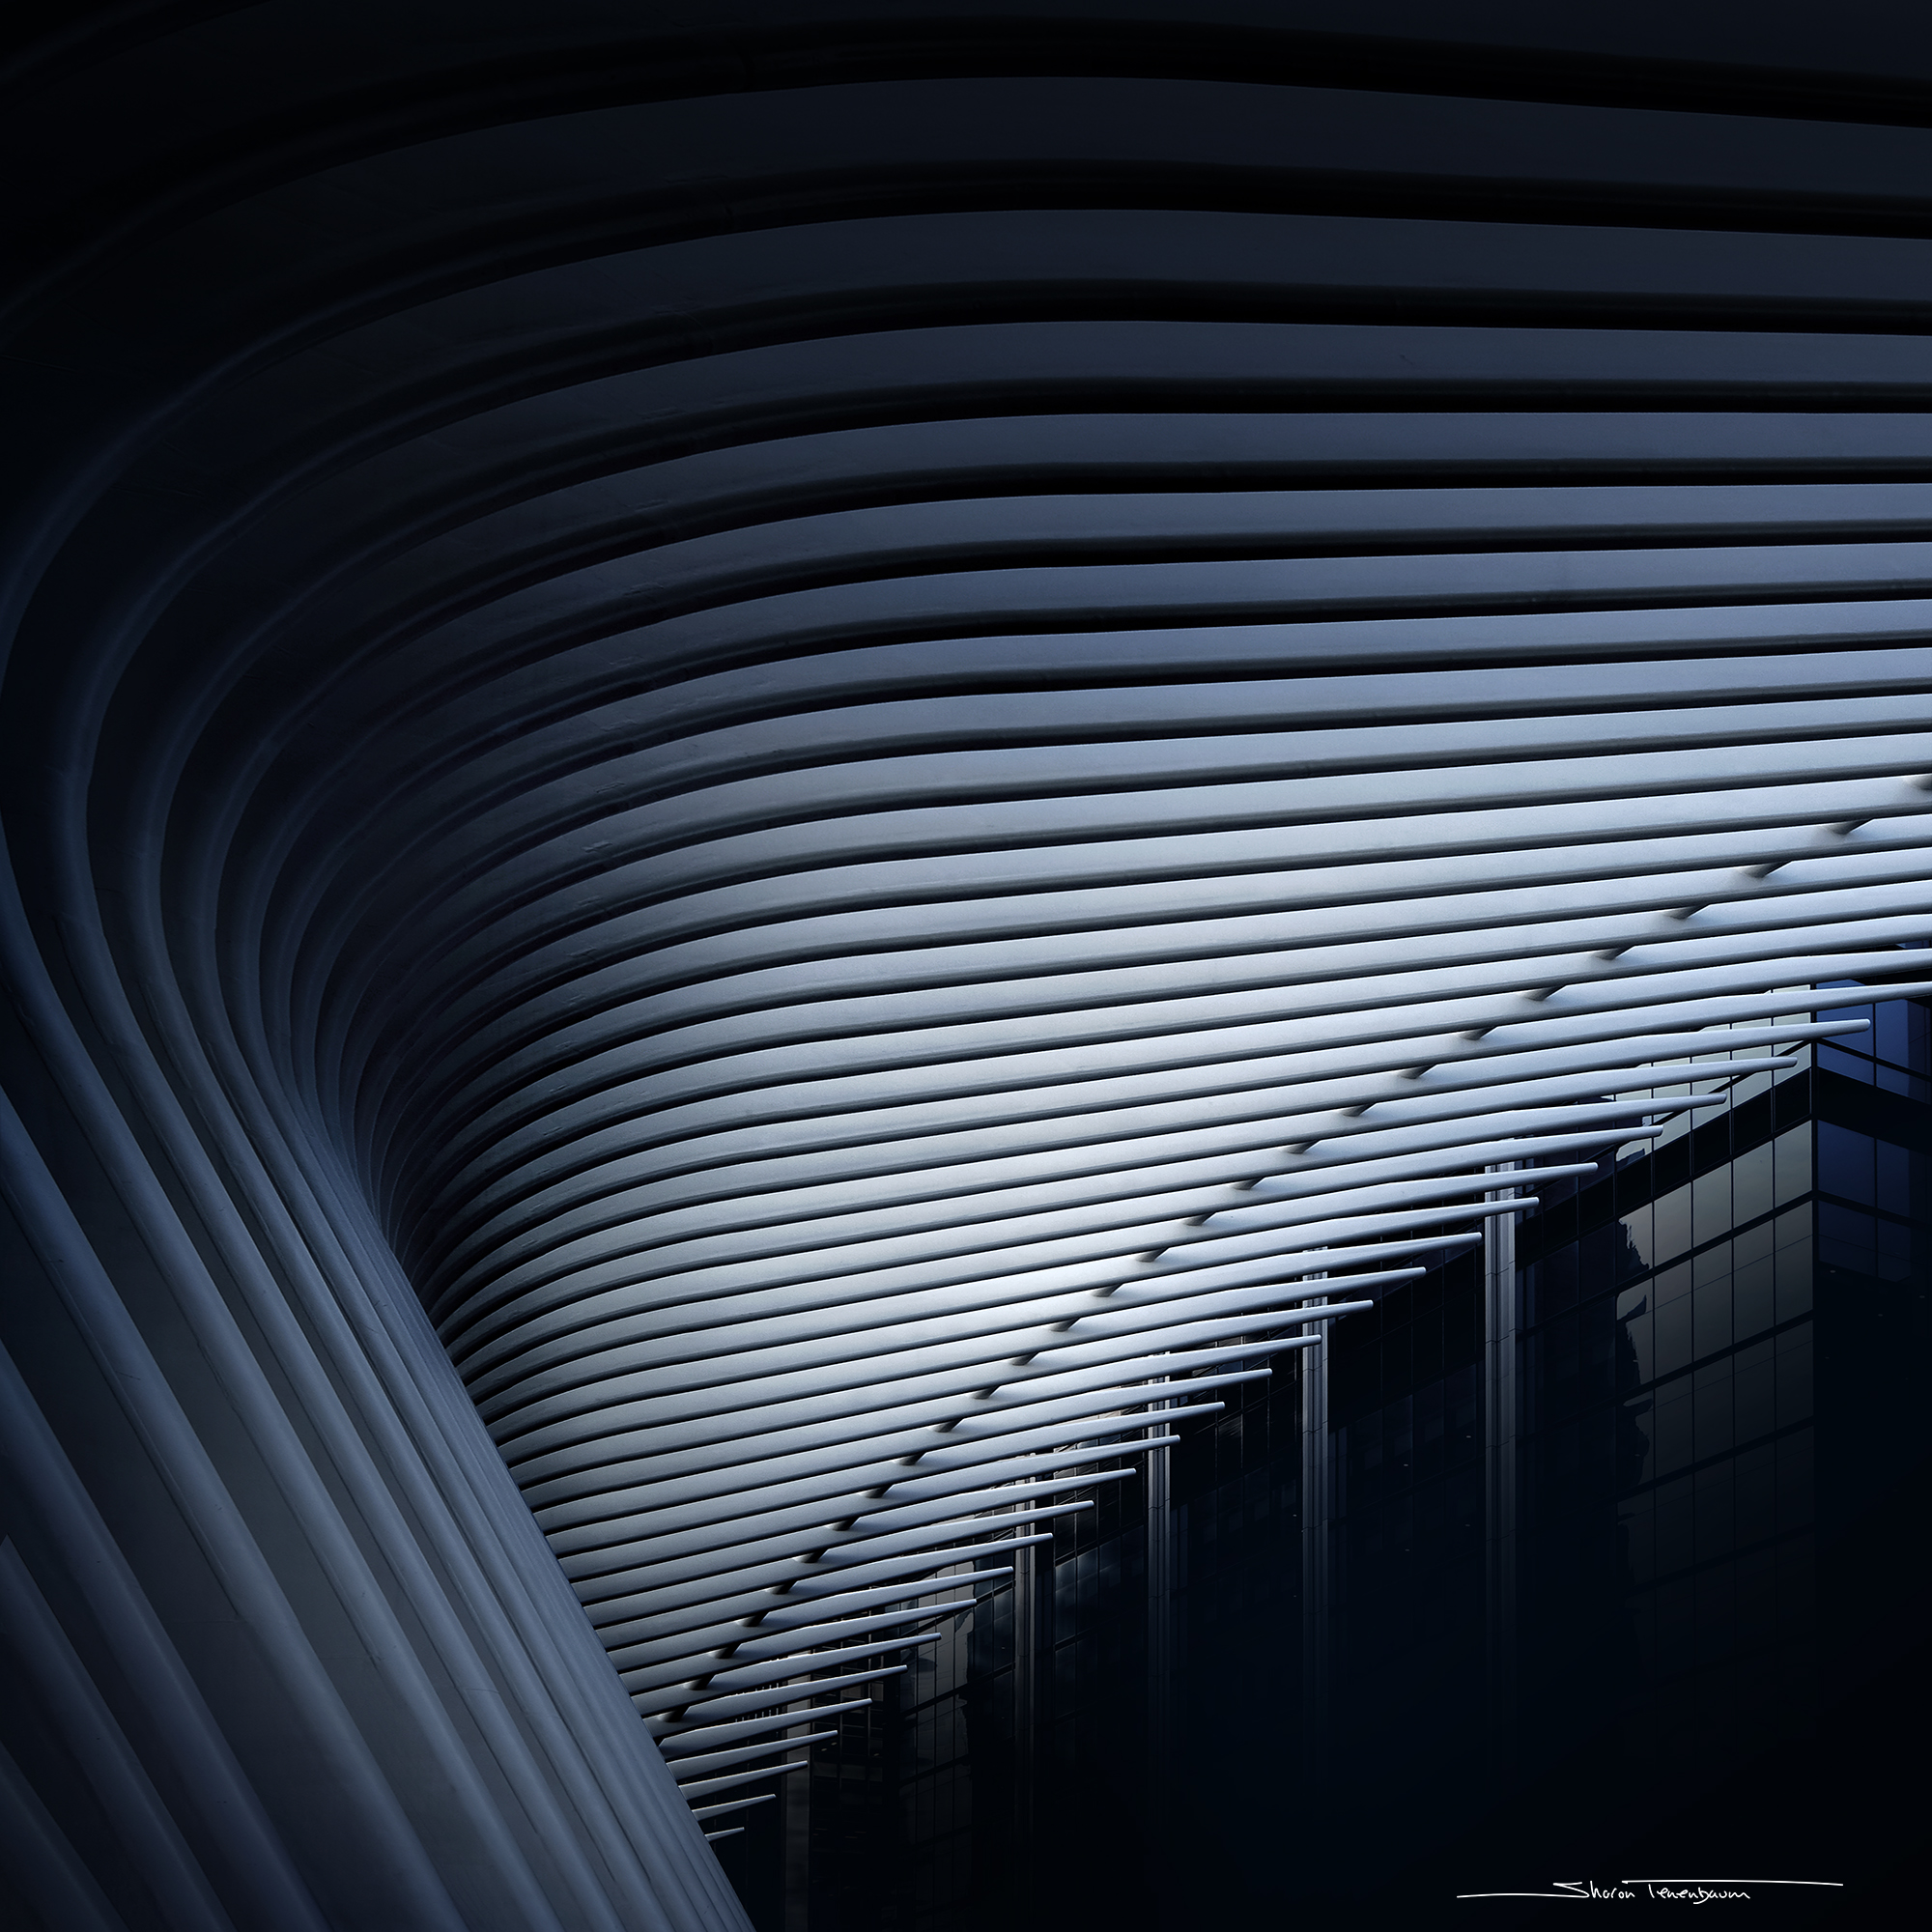 Oculus Abstract 4